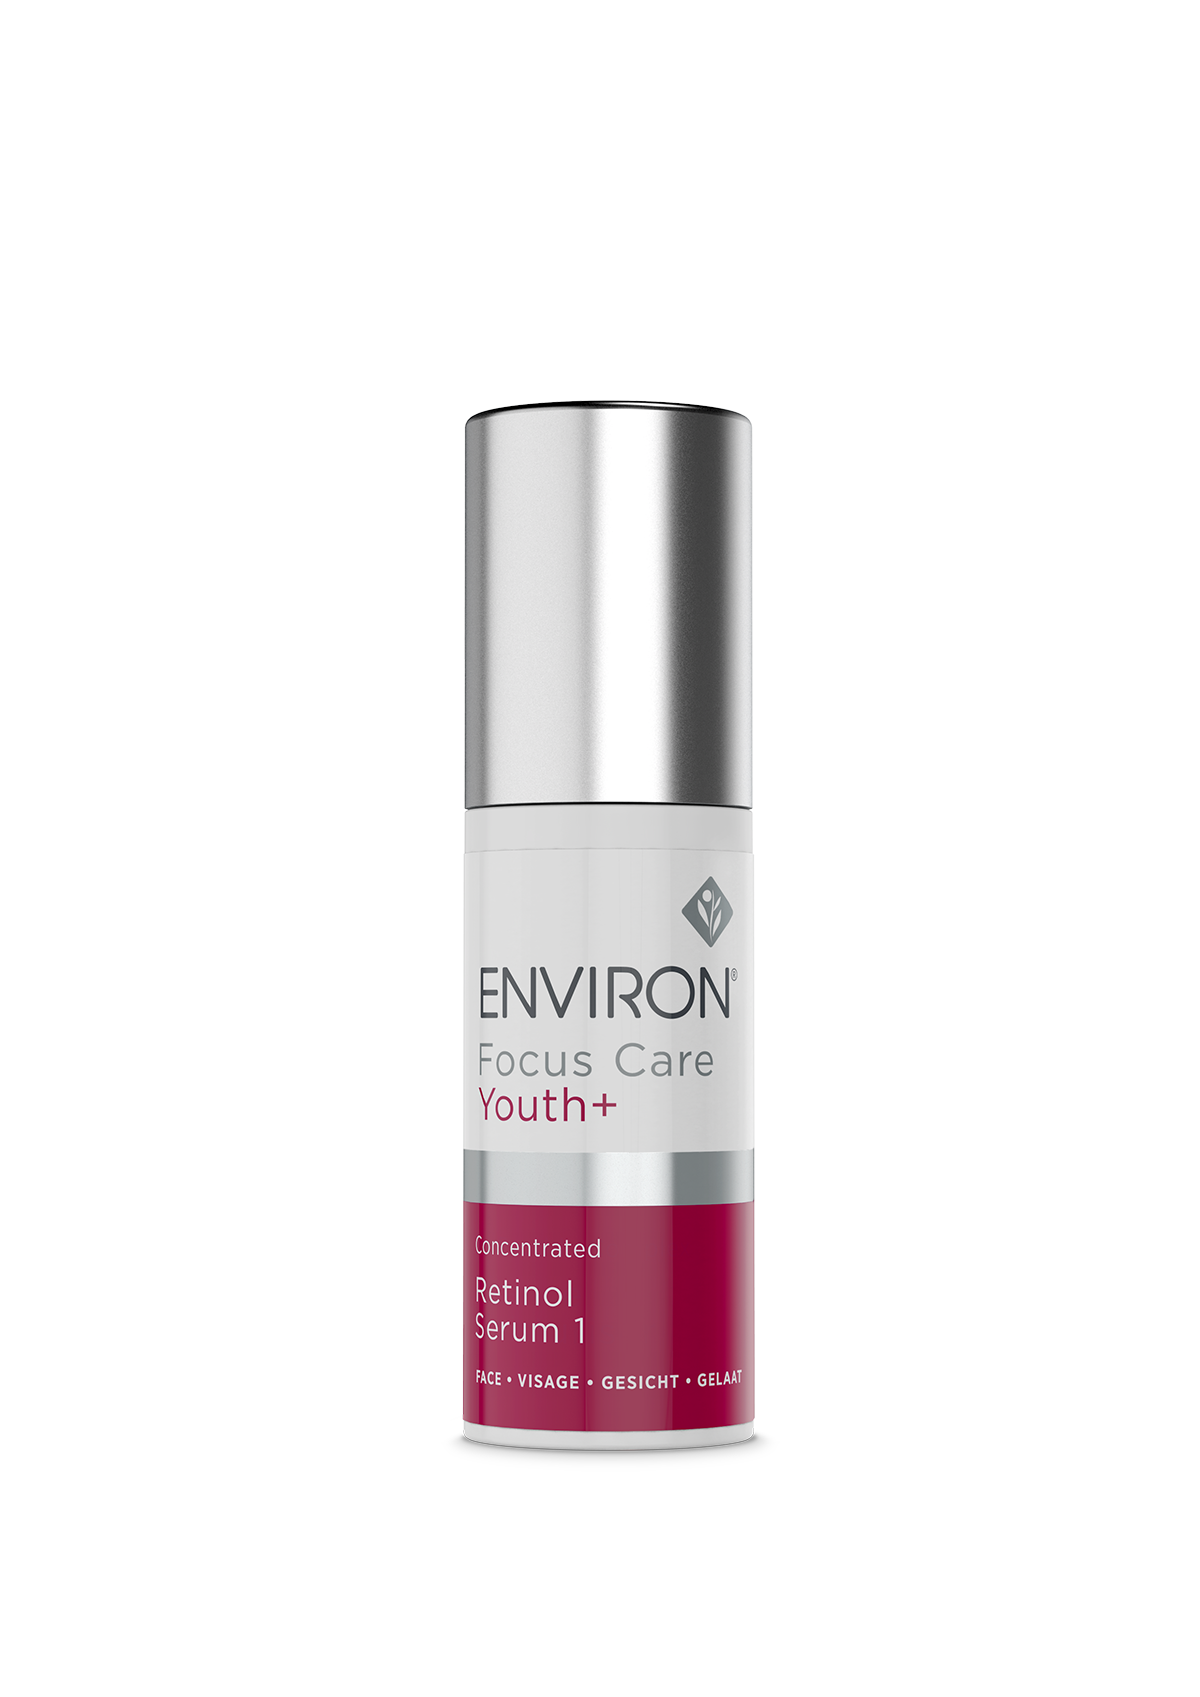 CONCENTRATED RETINOL SERUM 3 30 ML Image